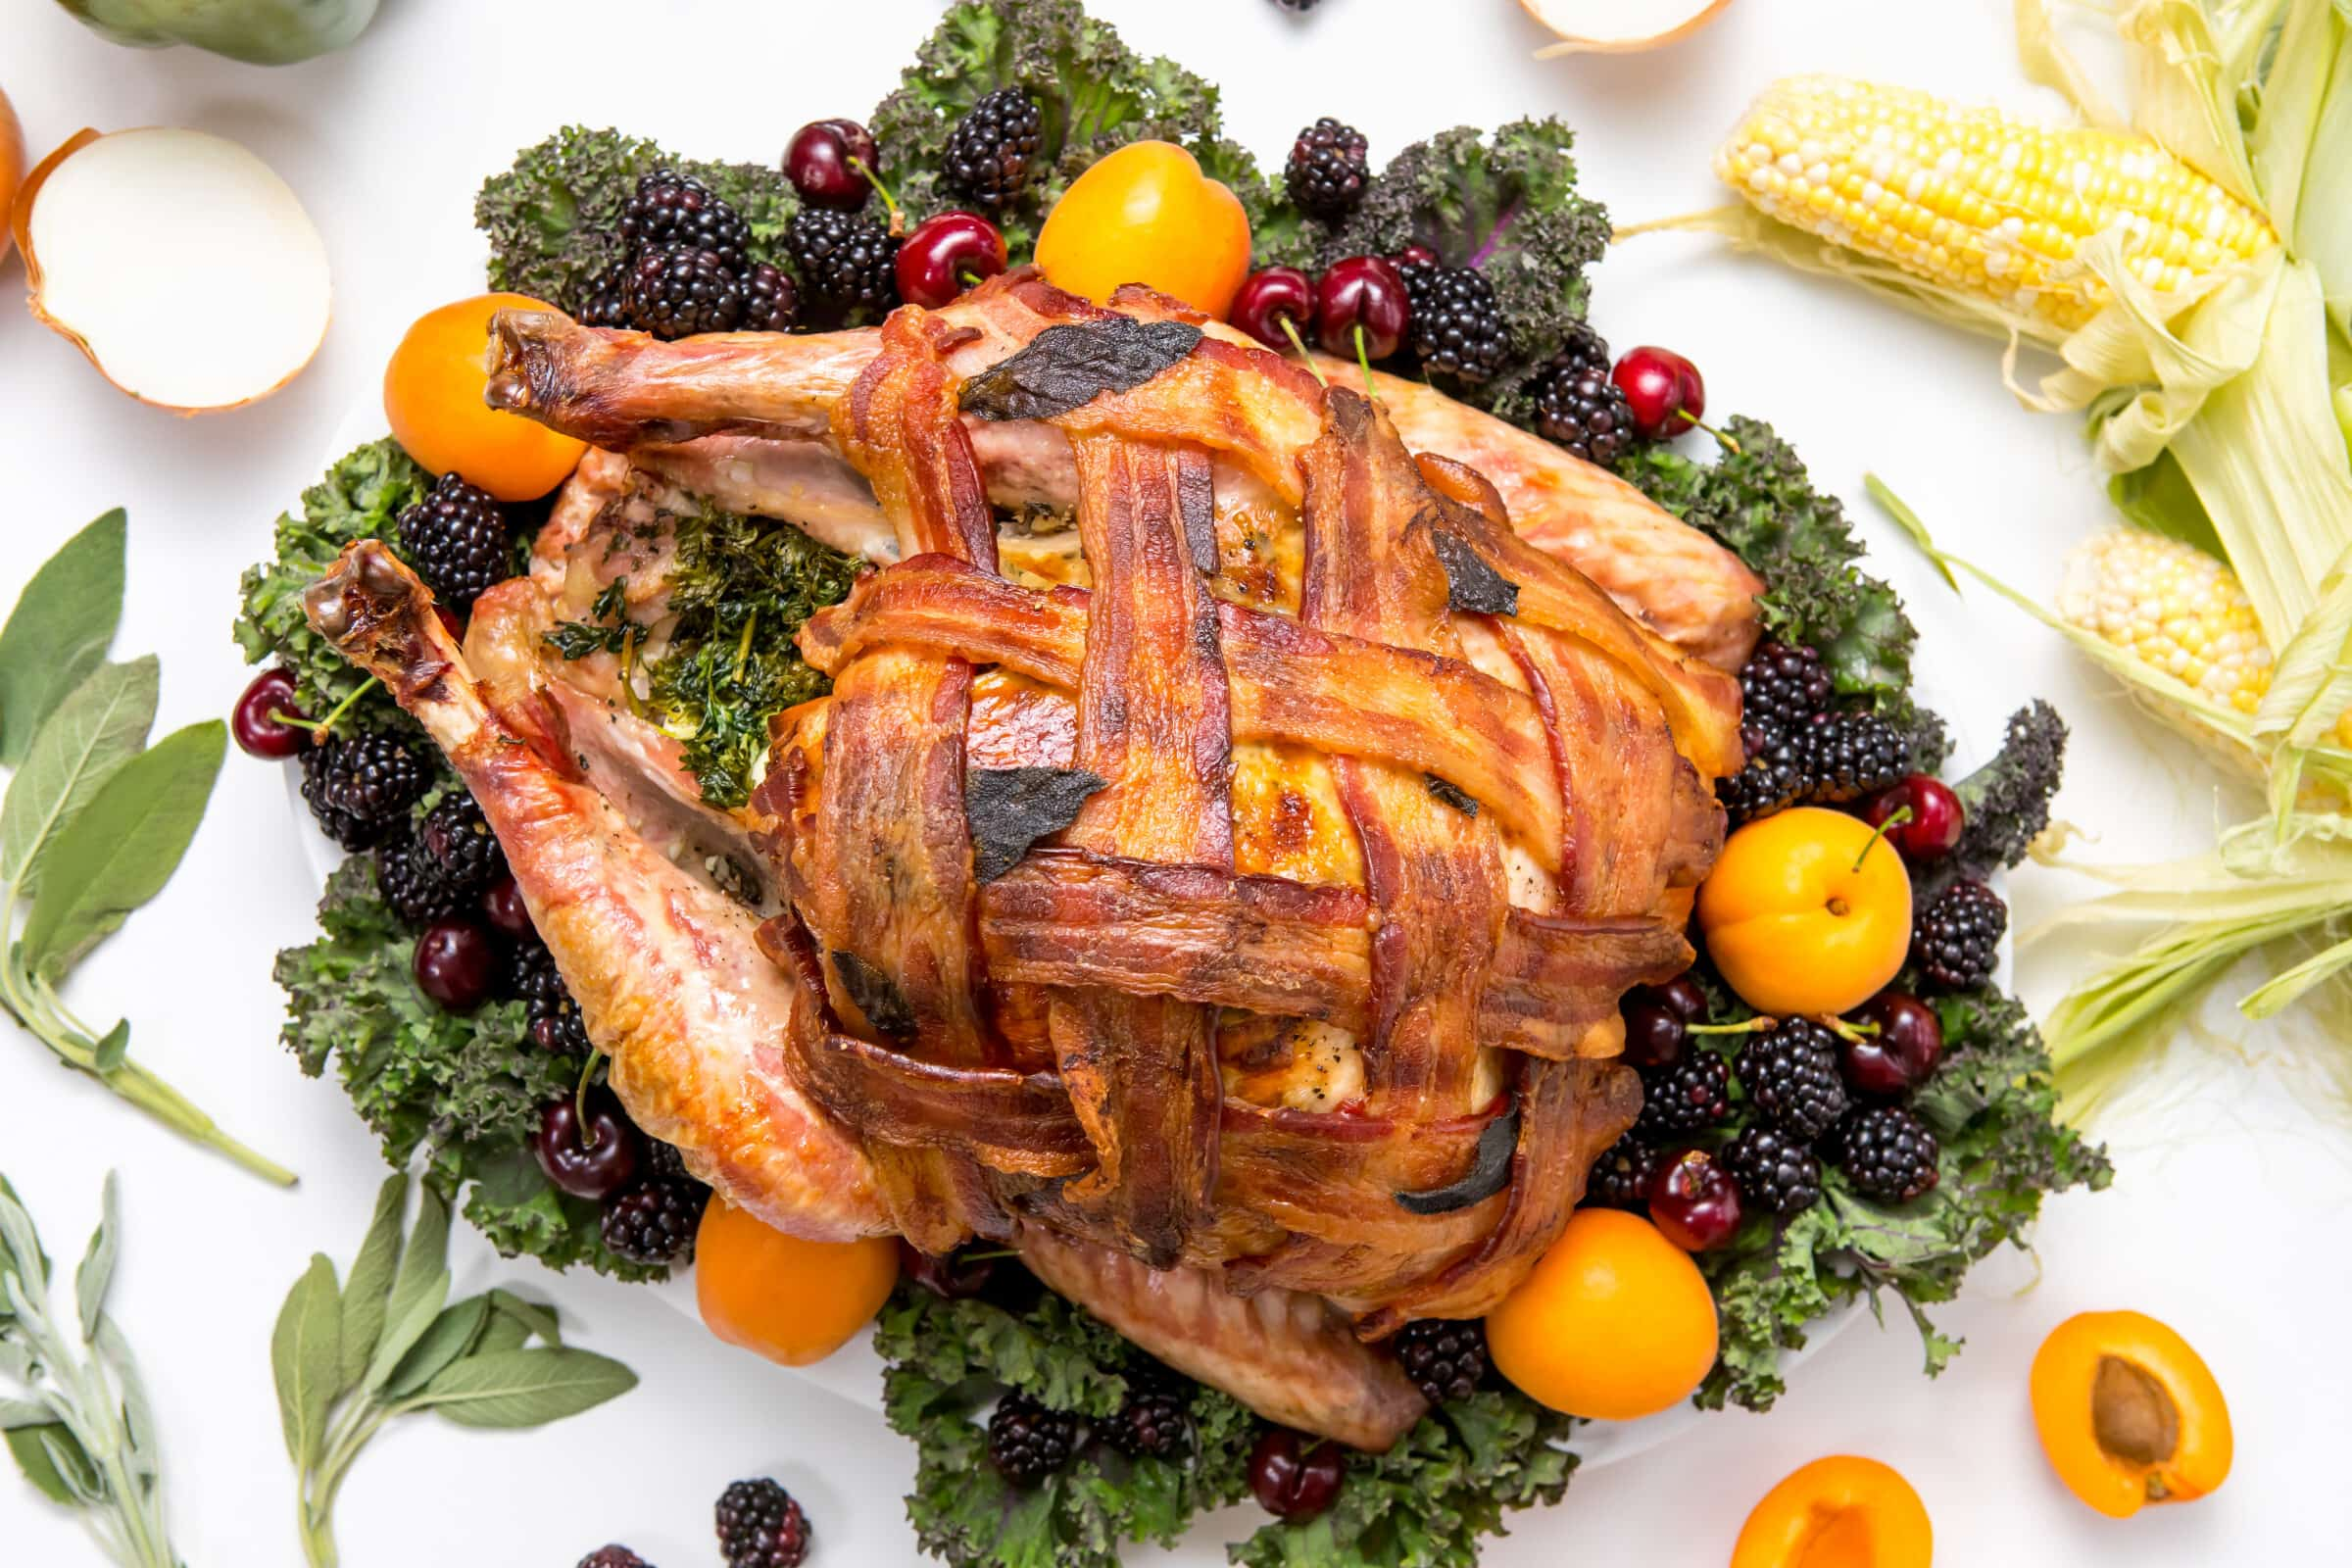 5D4B9754 - Bacon Wrapped Turkey - plated bacon wrapped turkey on a white table surrounded by corn, oranges, onions, bell pepper, blueberries, apricots and sage